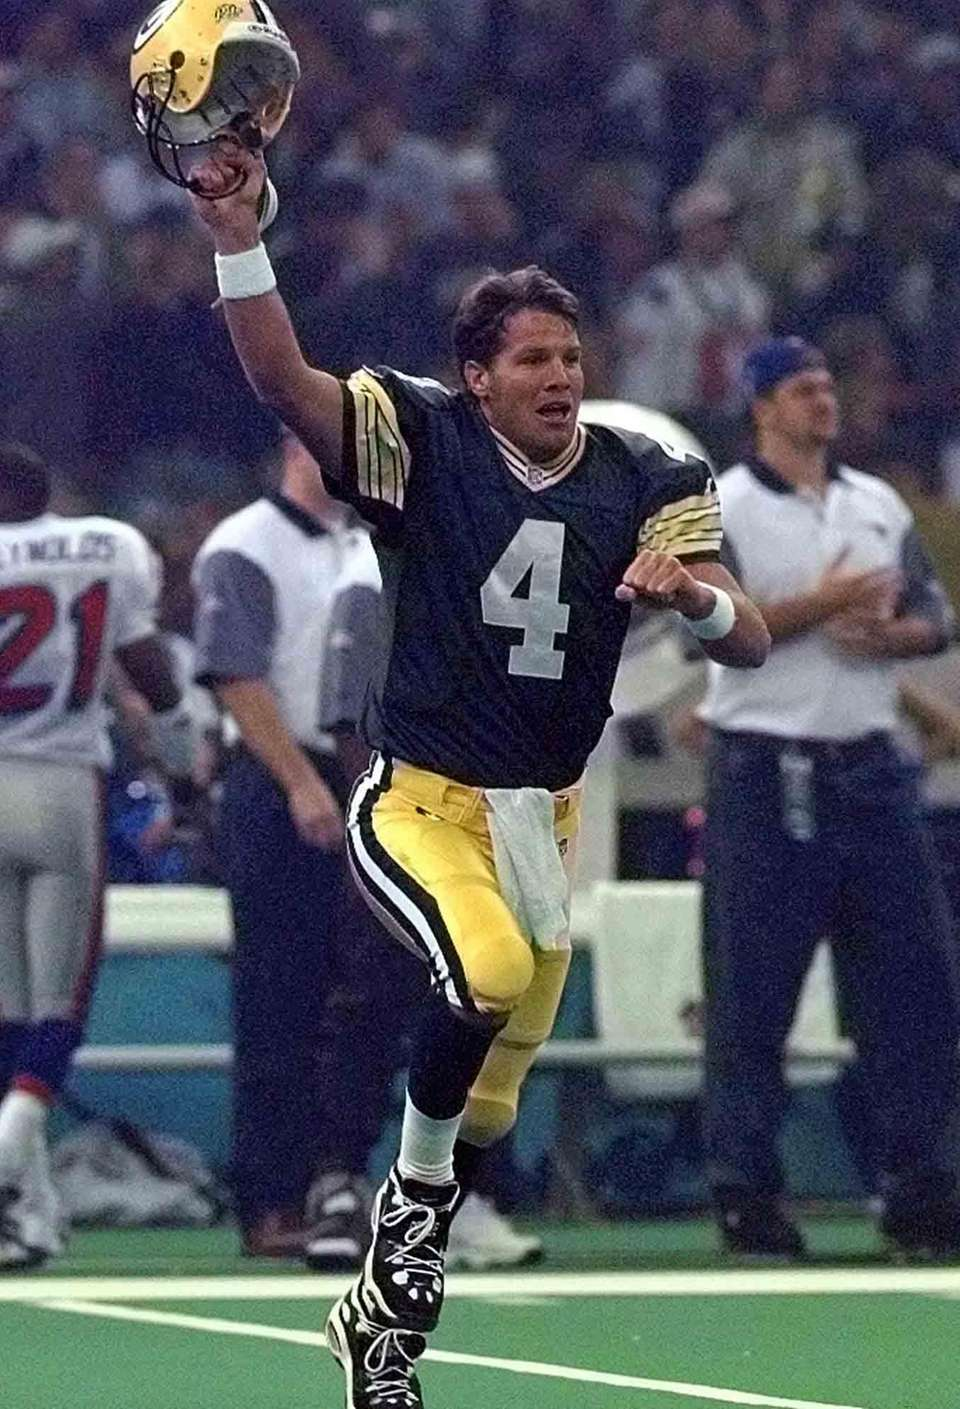 FAVRE CAUGHT PARTYING? Super Bowl XXXI Brett Favre